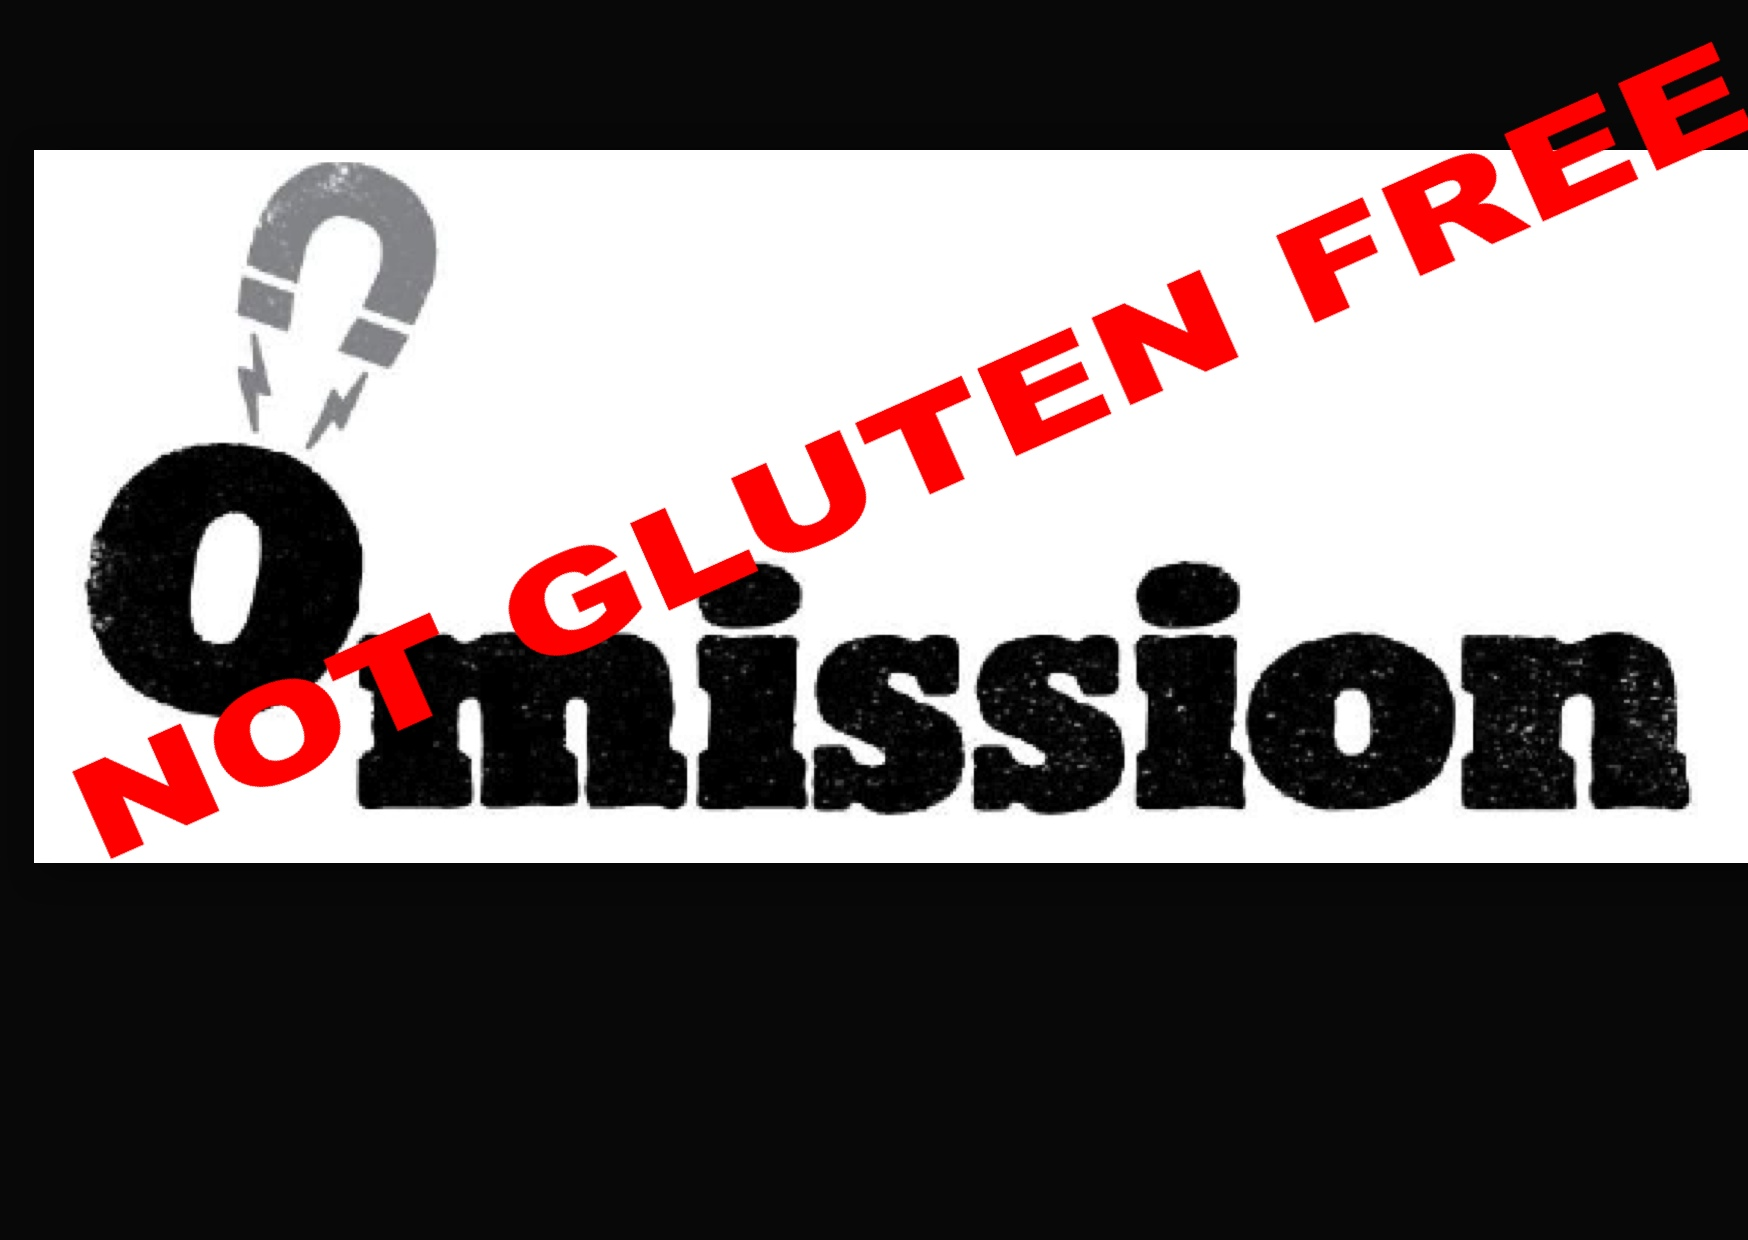 GLUTENFREEGAL UNDER FIRE from Executive Director of CSA over Freedom of Speech